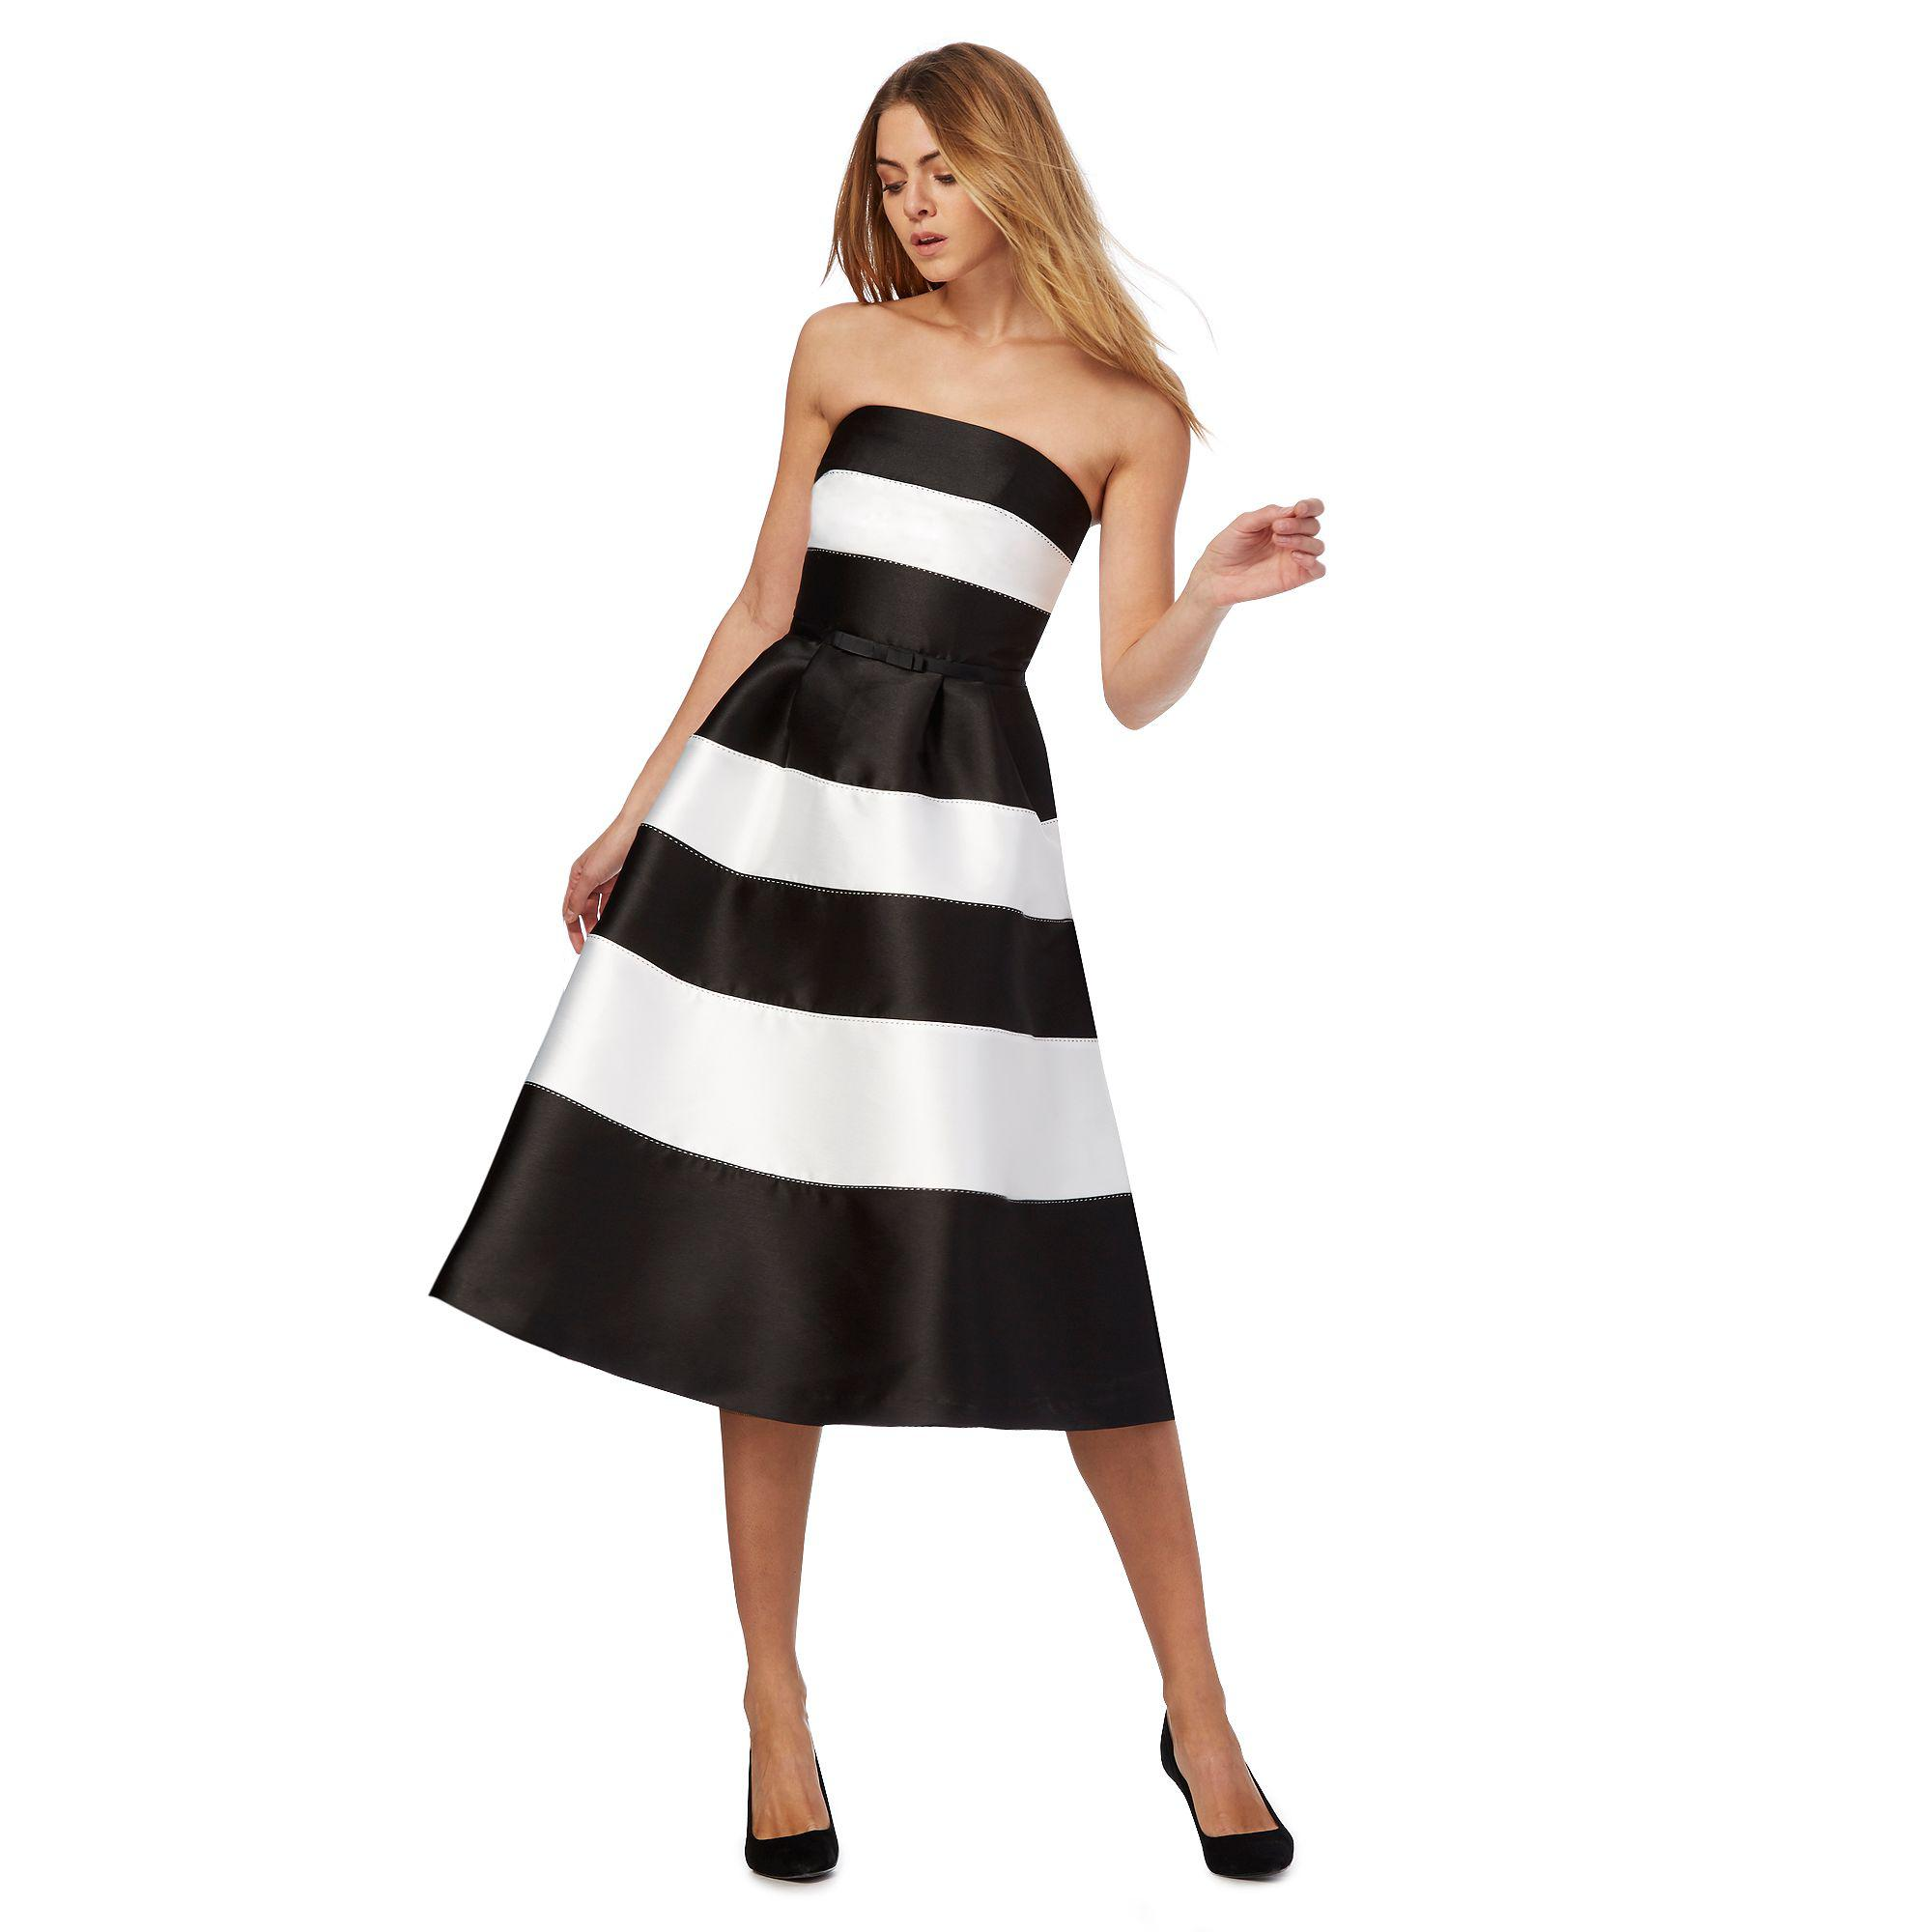 9d9ca5406a816 Black And White Striped Prom Dress - raveitsafe